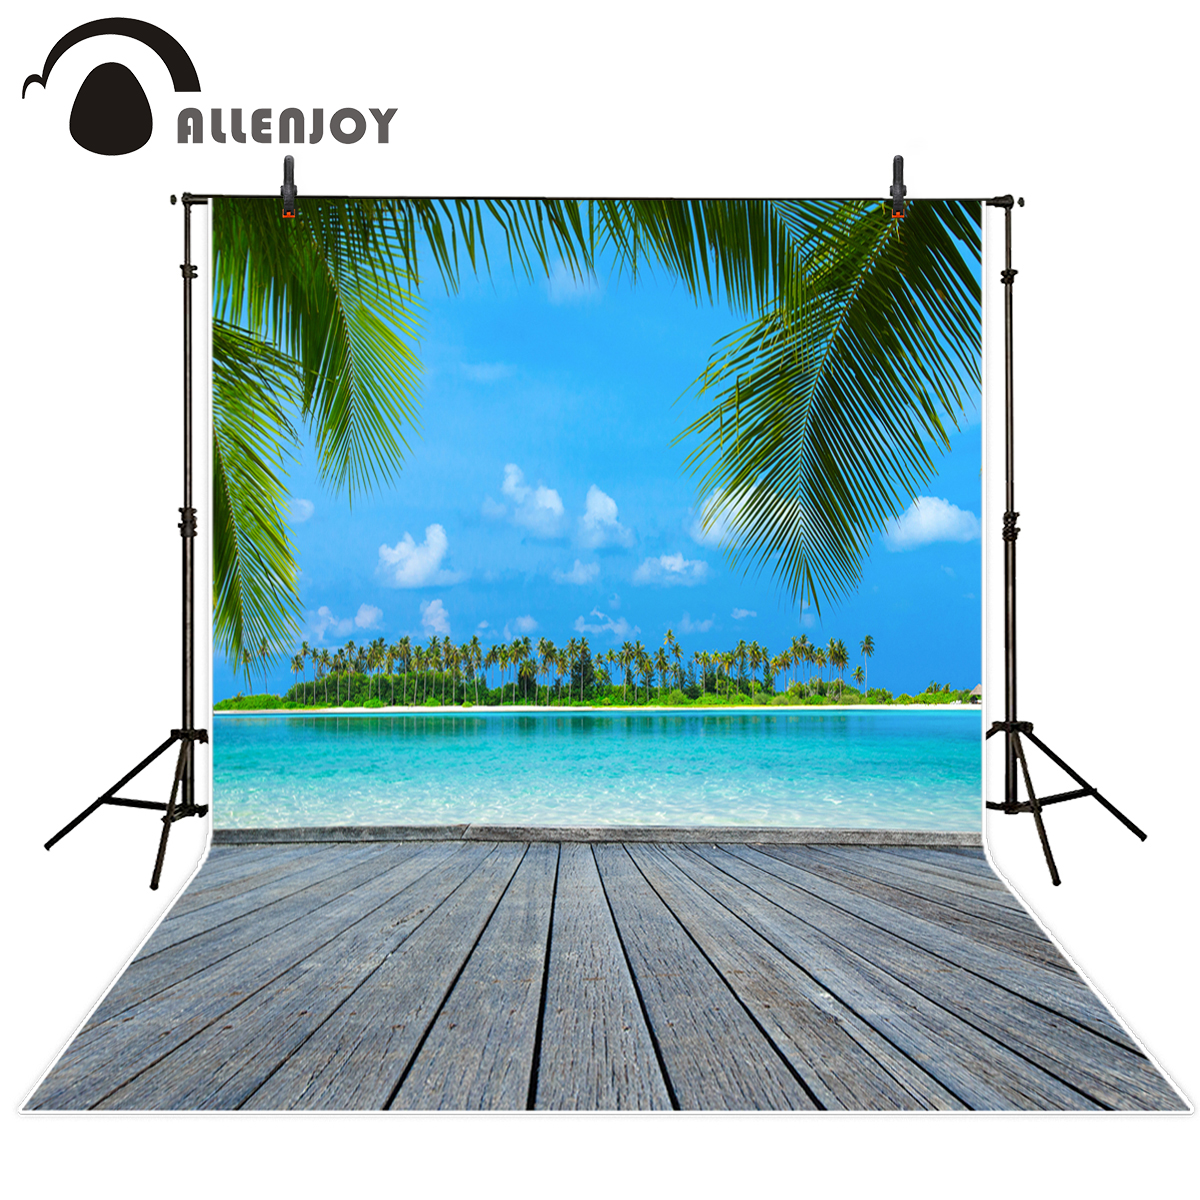 Allenjoy summer scenery photography backdrops blue sky wooden floor ocean kids photographic backgrounds for photo studio allenjoy photography backdrops natural stone gray pattern kids photo backgrounds photographic studio computer printing lovely